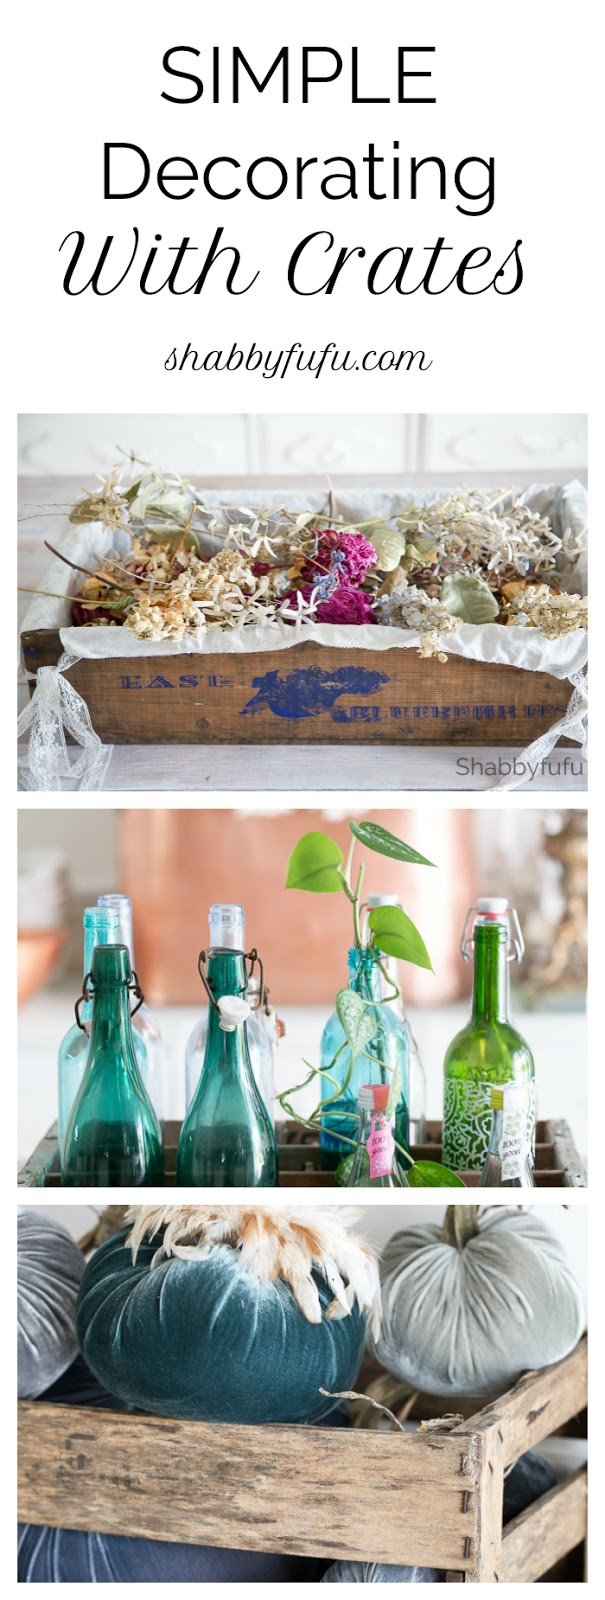 Simple Foolproof Ways To Decorate With Crates